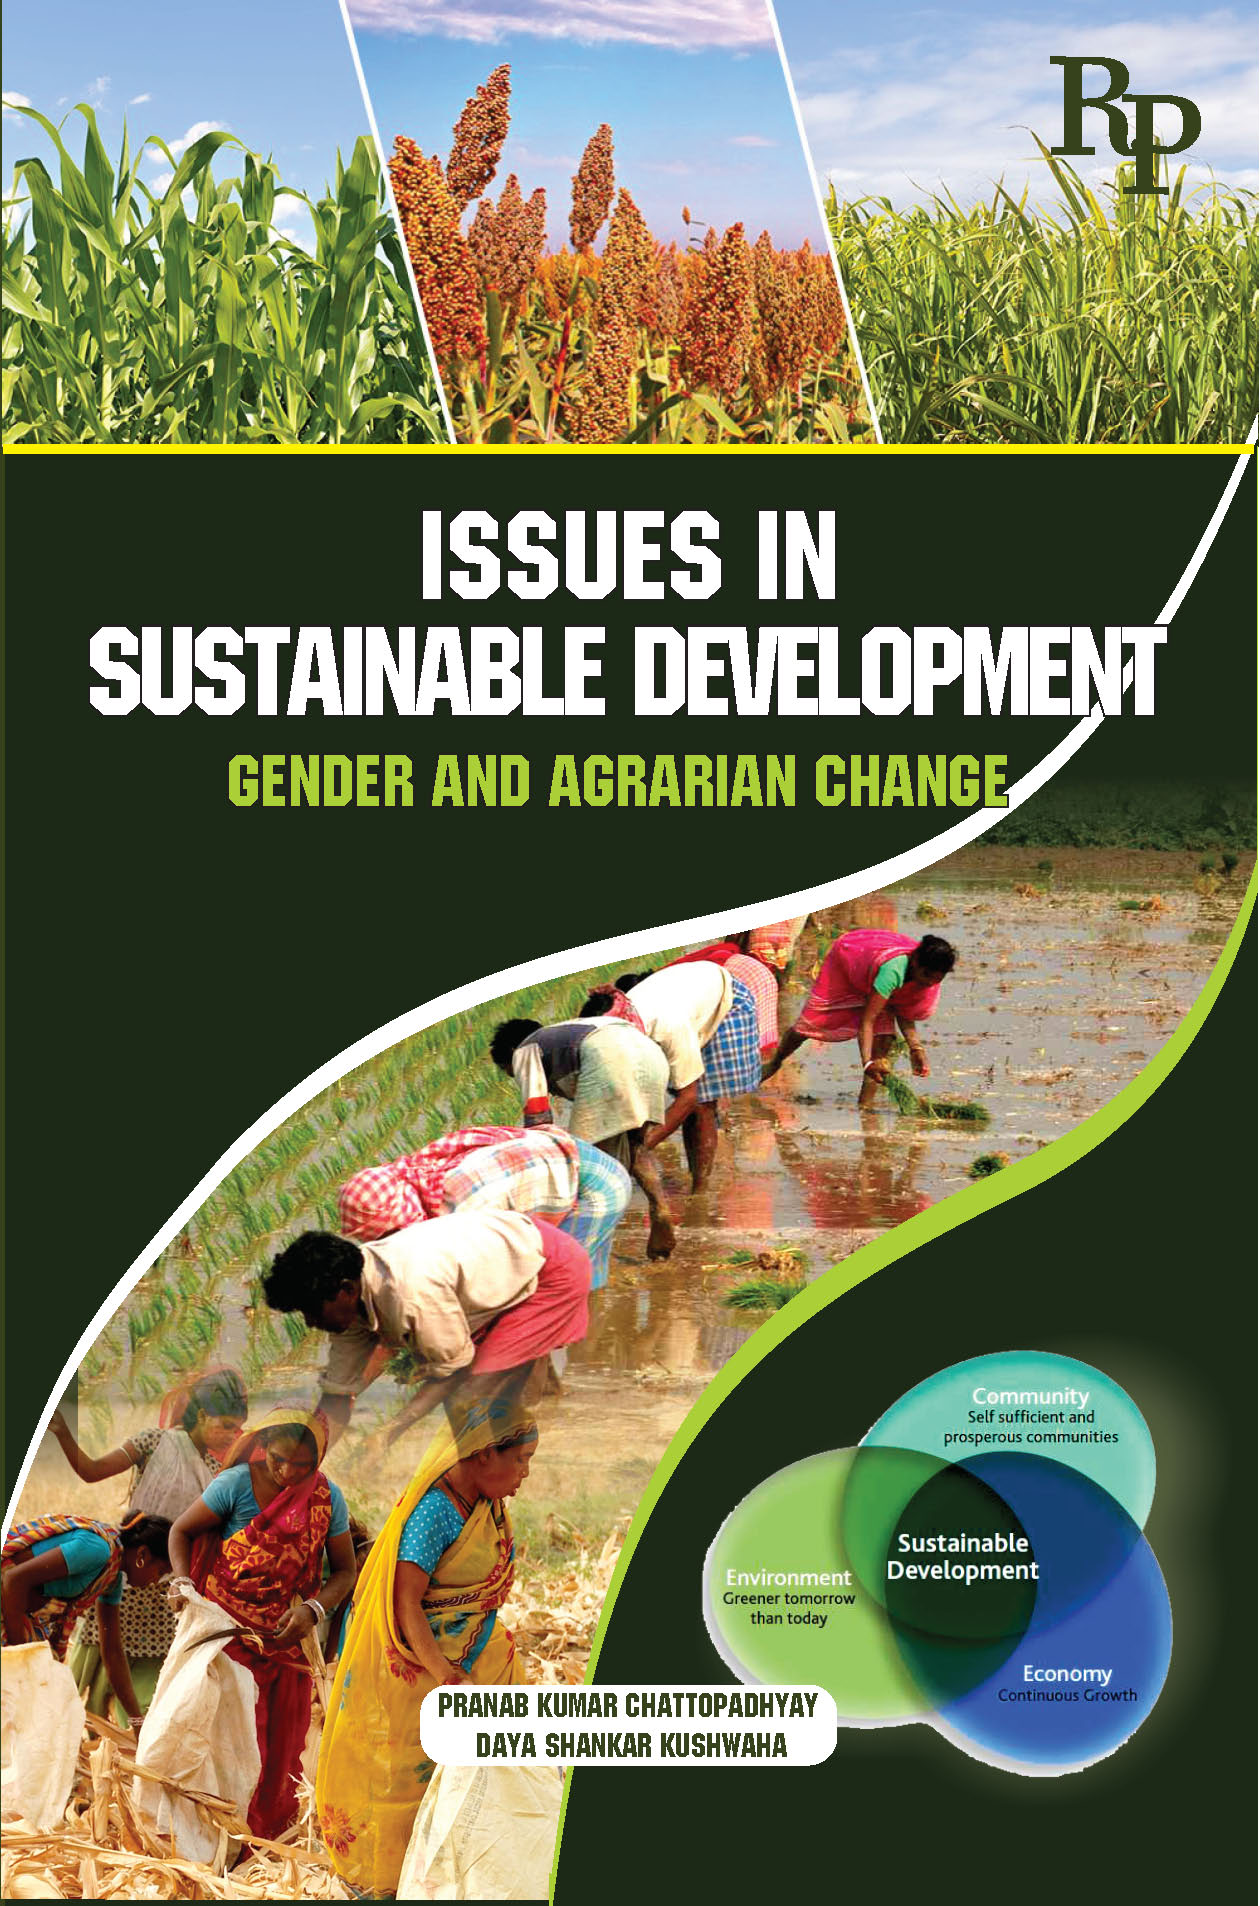 Issues in sustainable development- Gender and agrigarin.jpg